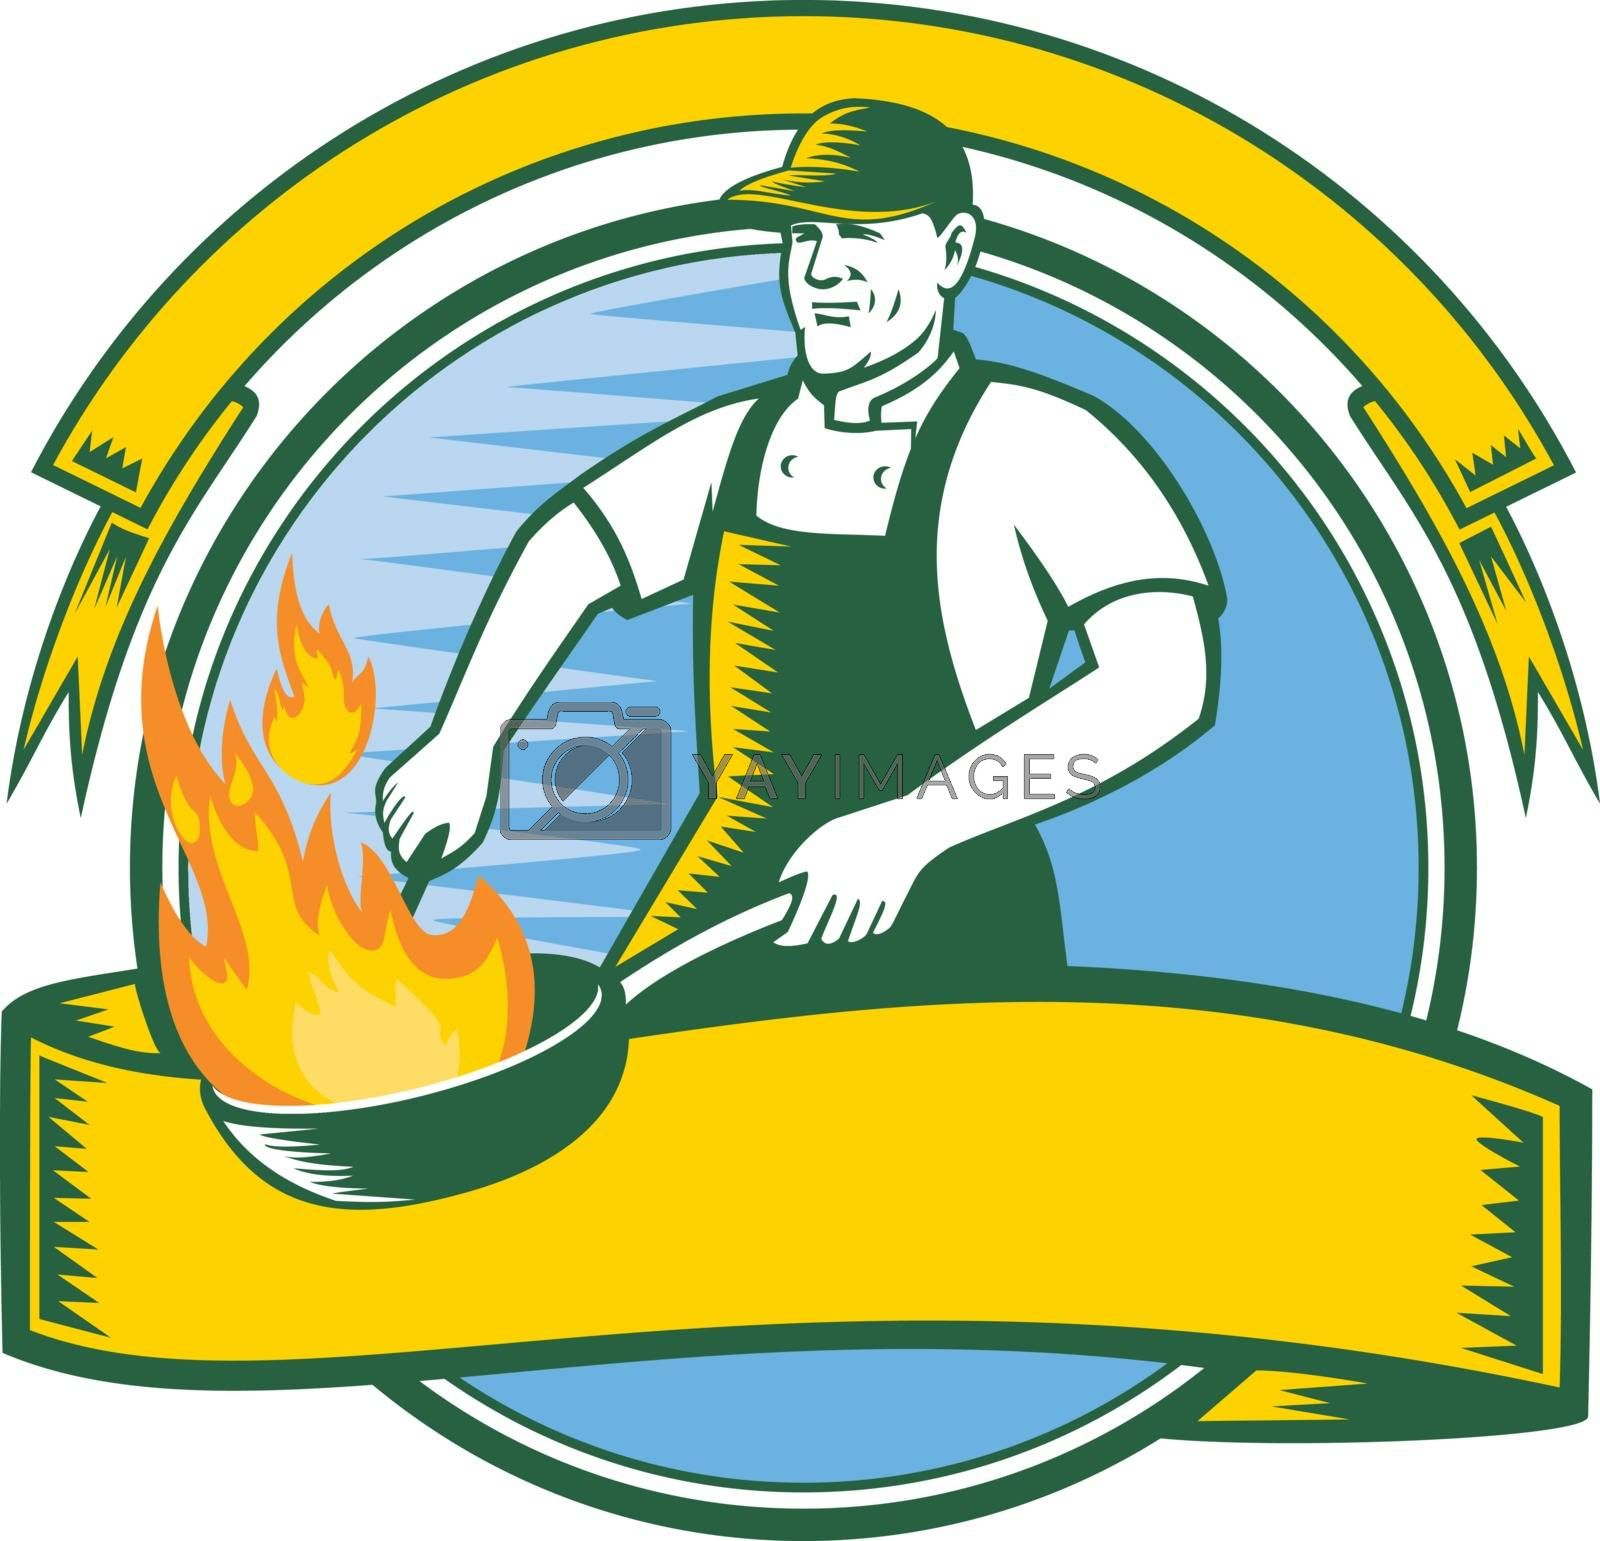 Mascot icon illustration of a cook or chef cooking with flaming pan or wok set inside circle with ribbon and banner viewed from front in retro style on isolated background in retro style.